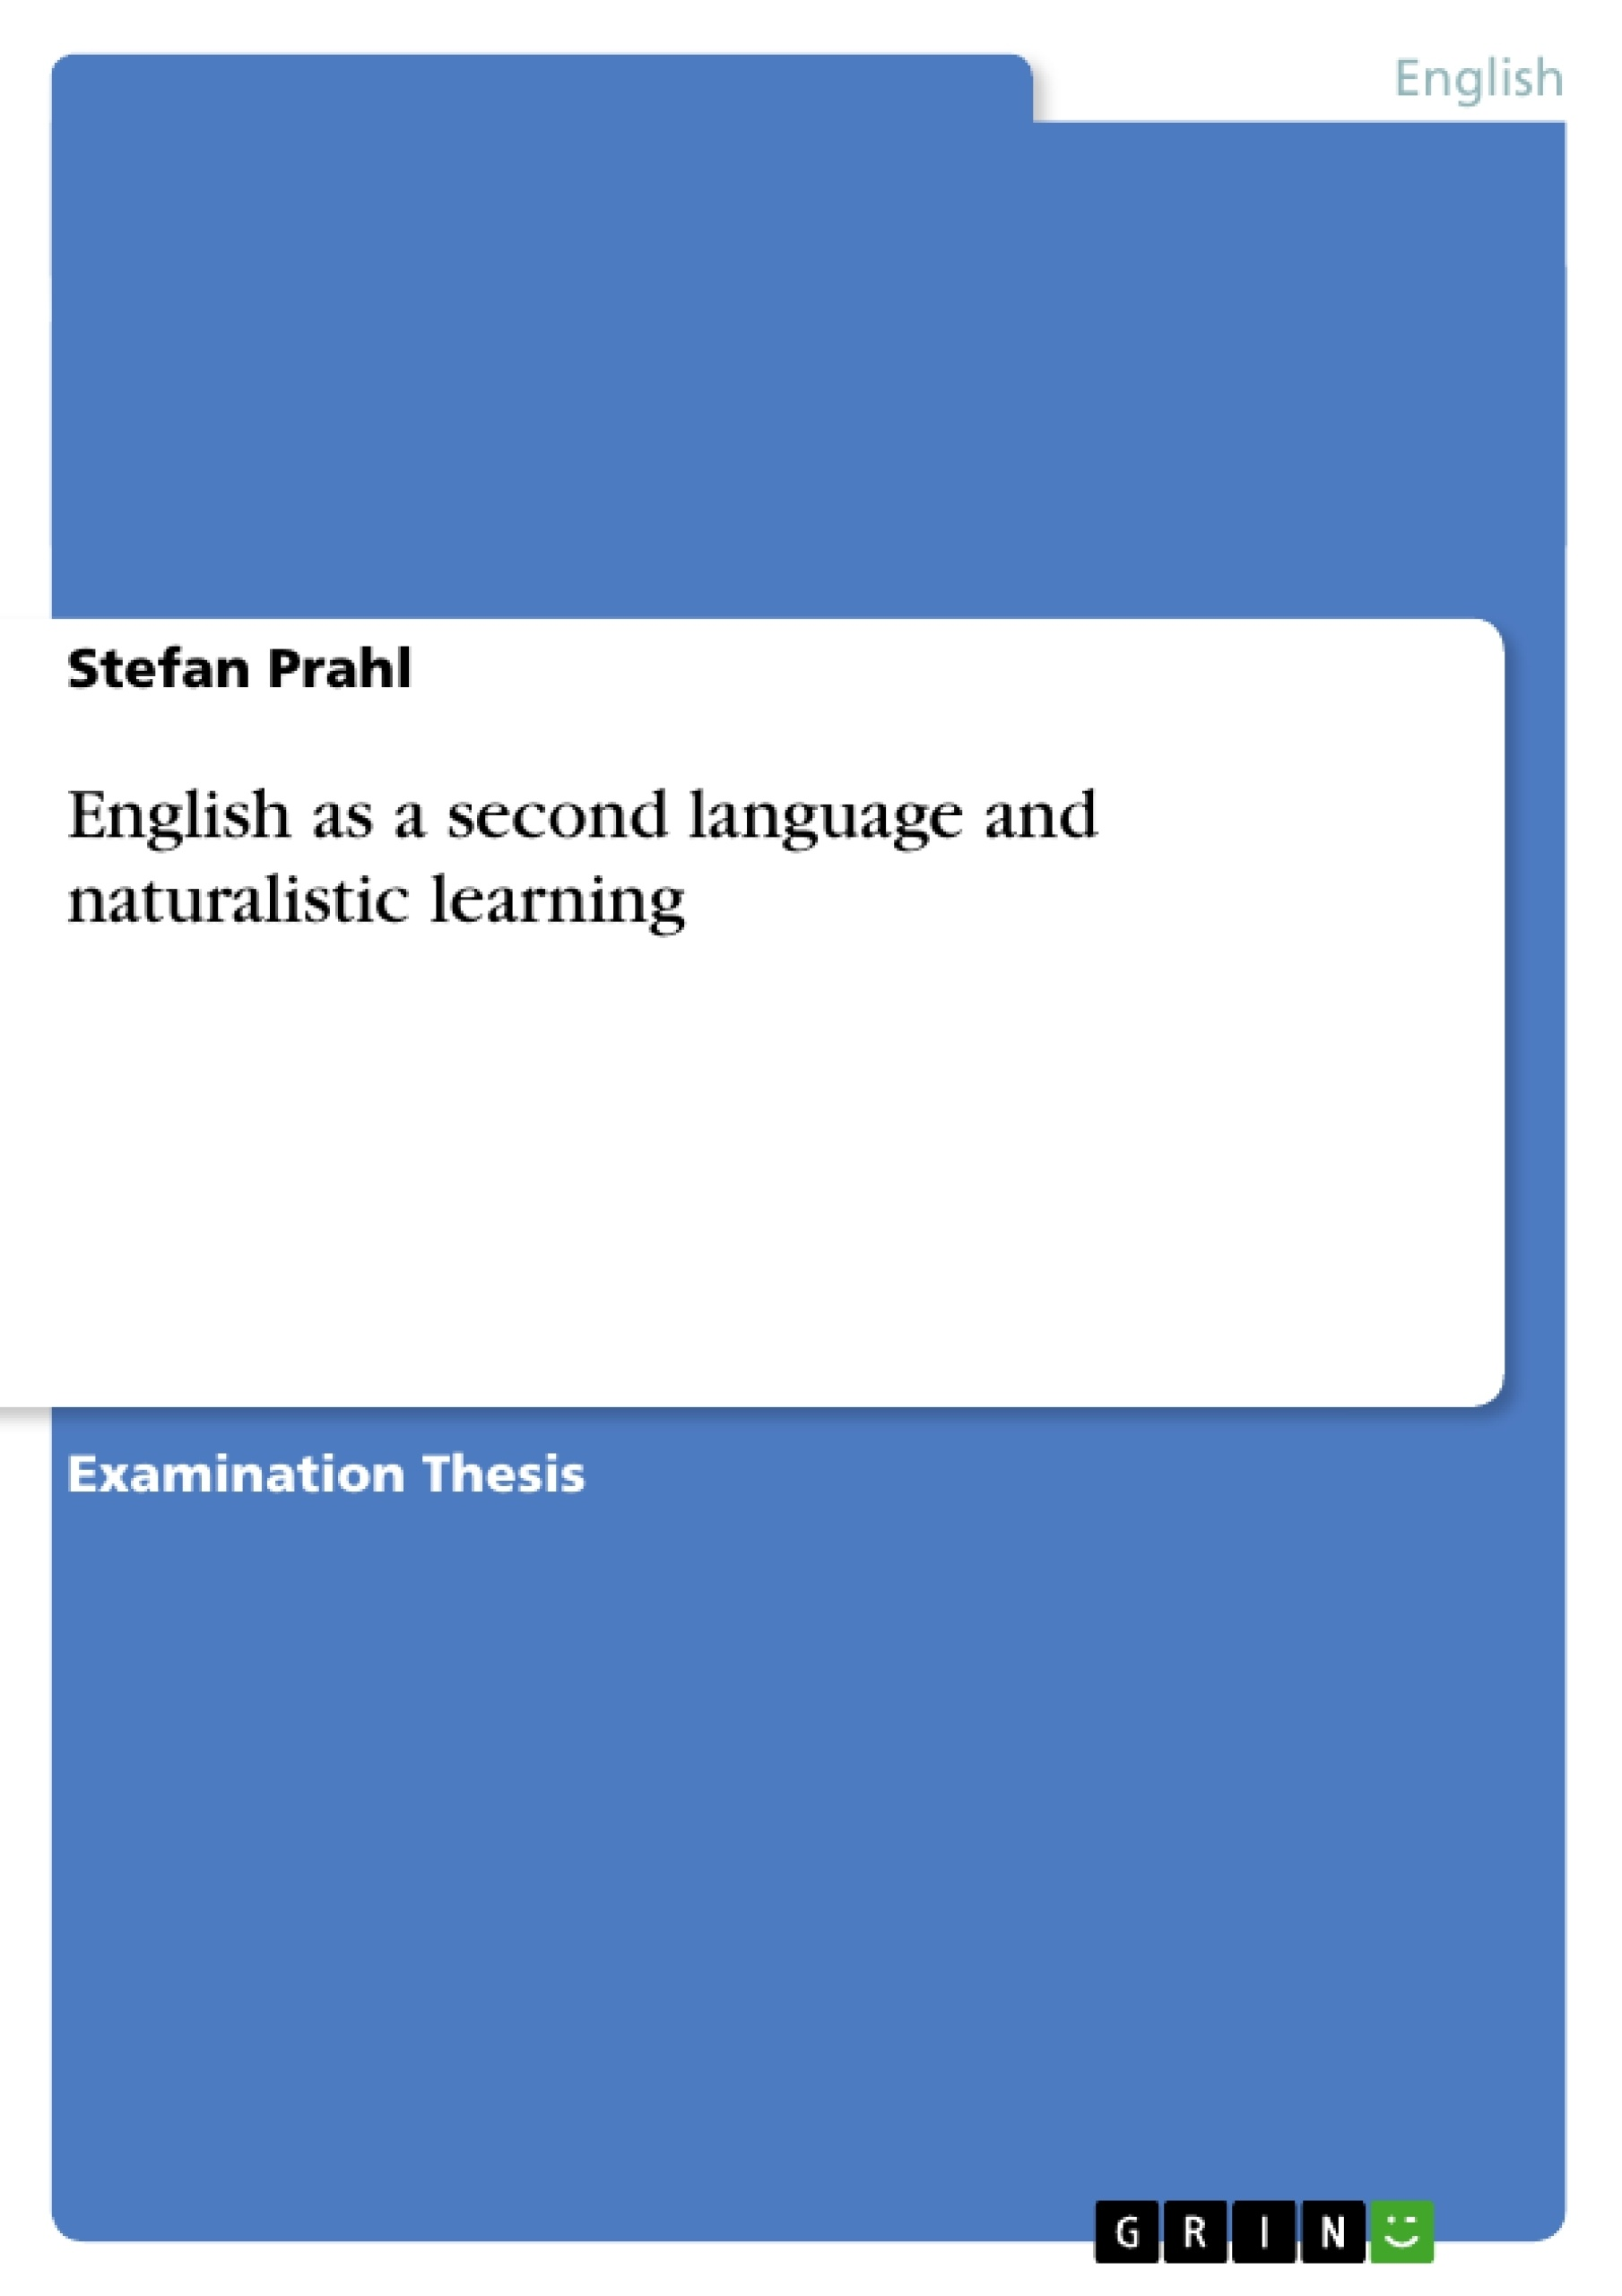 Thesis Topics Related to Language Learning and Acquisition